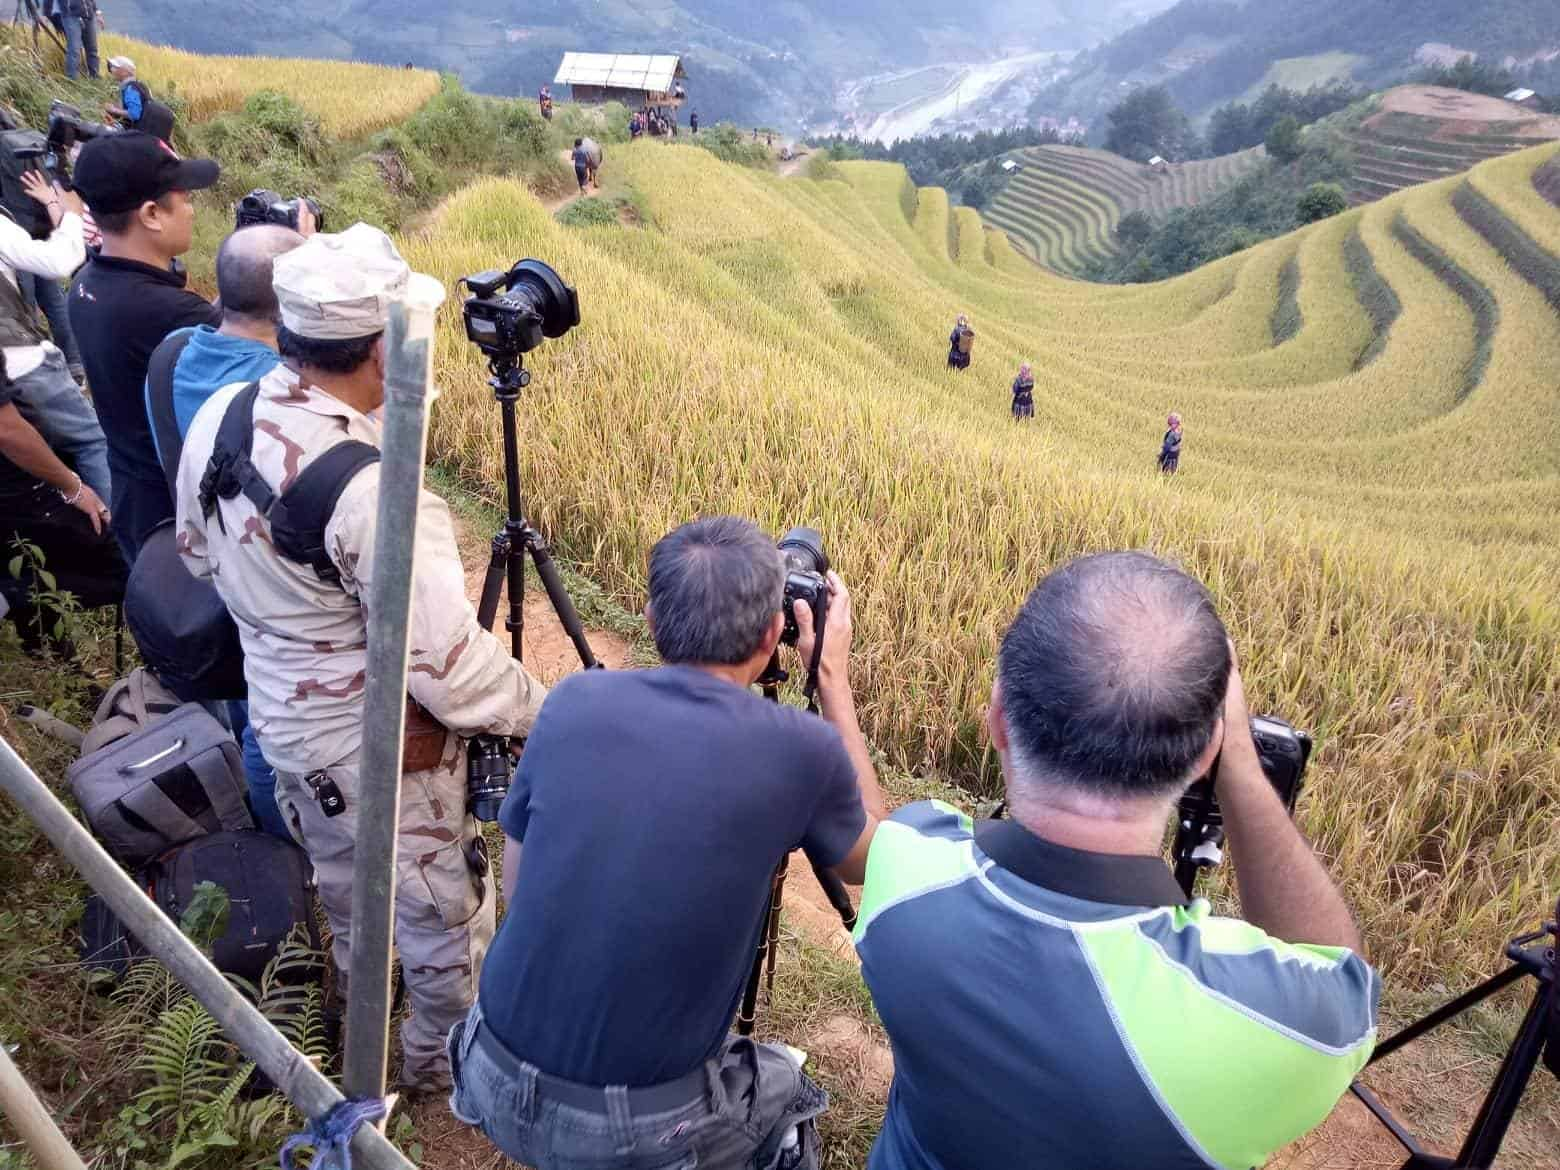 Vietnamese photographers taking photos of models in the rice fields of Mu Cang Chai